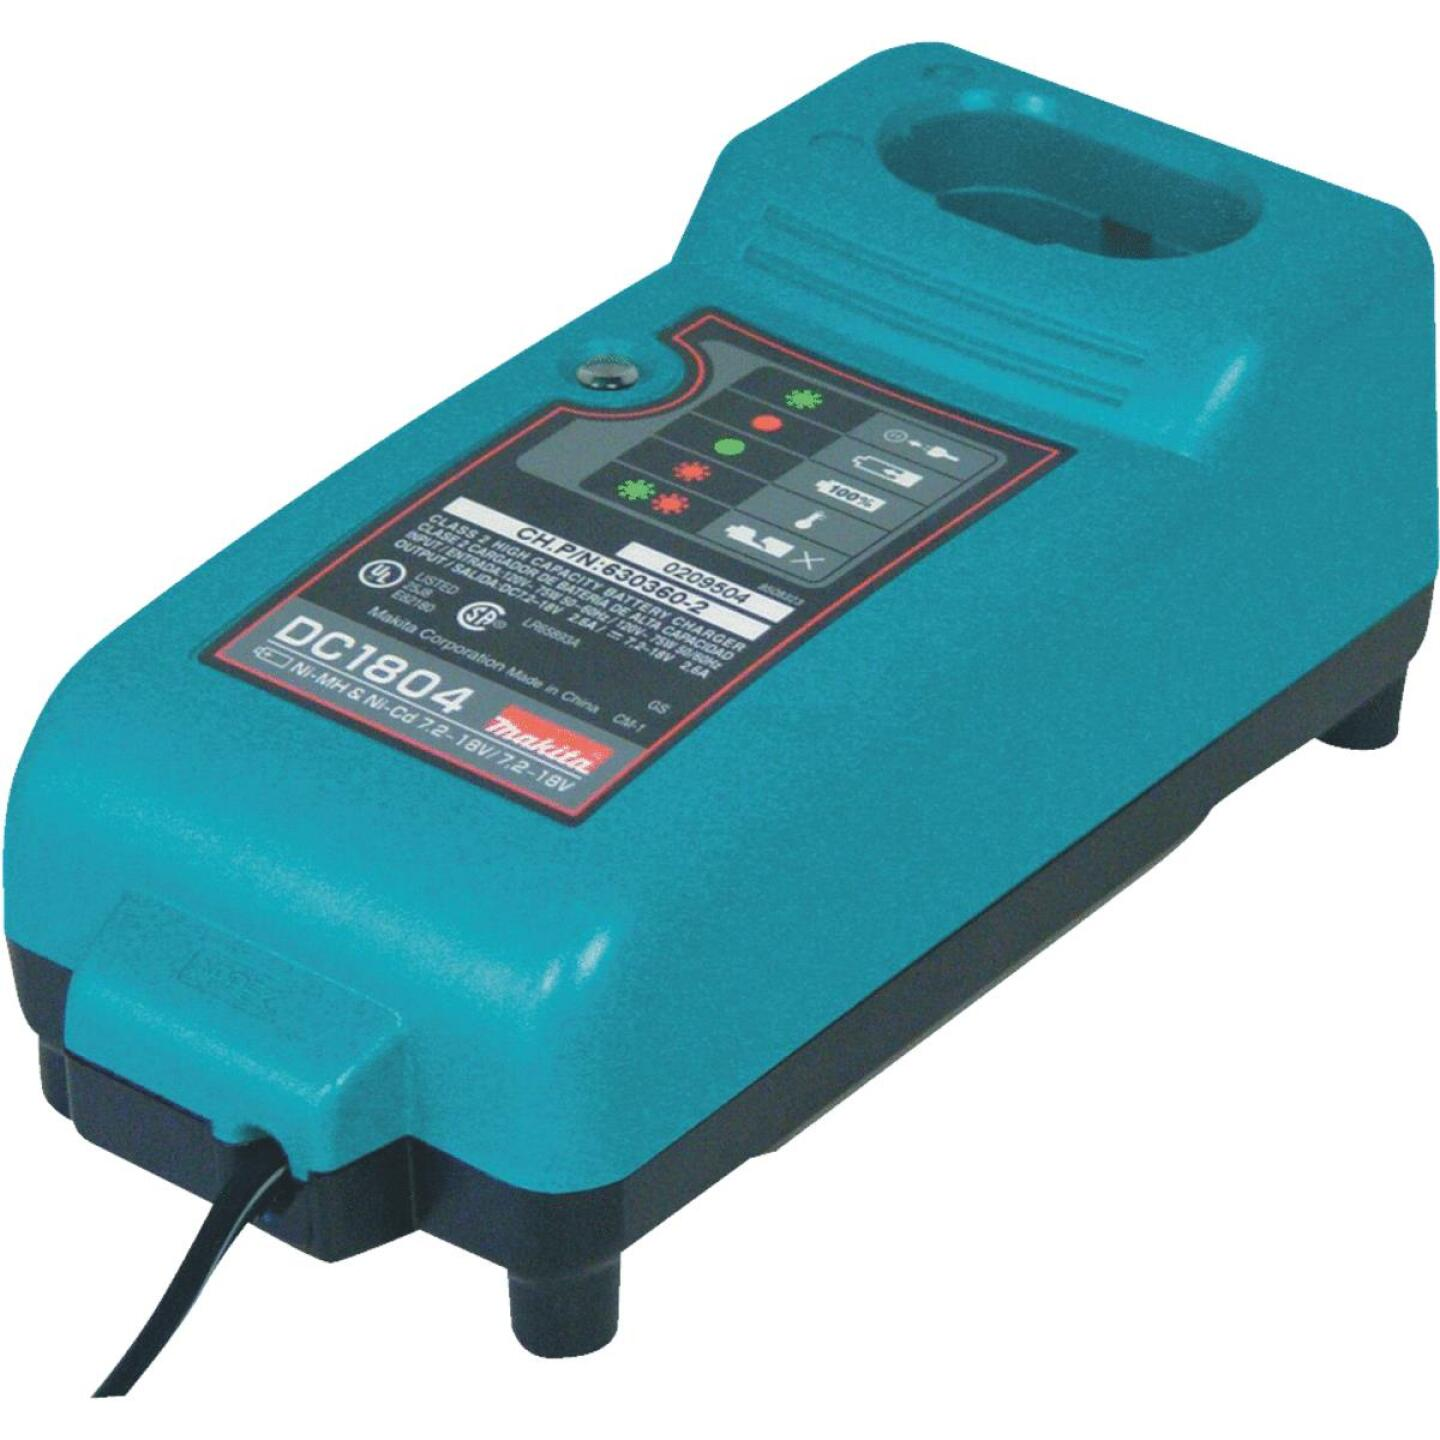 Makita 7.2-Volt to18-Volt Nickel-Cadmium/Nickel-Metal Hydride Battery Charger Image 1